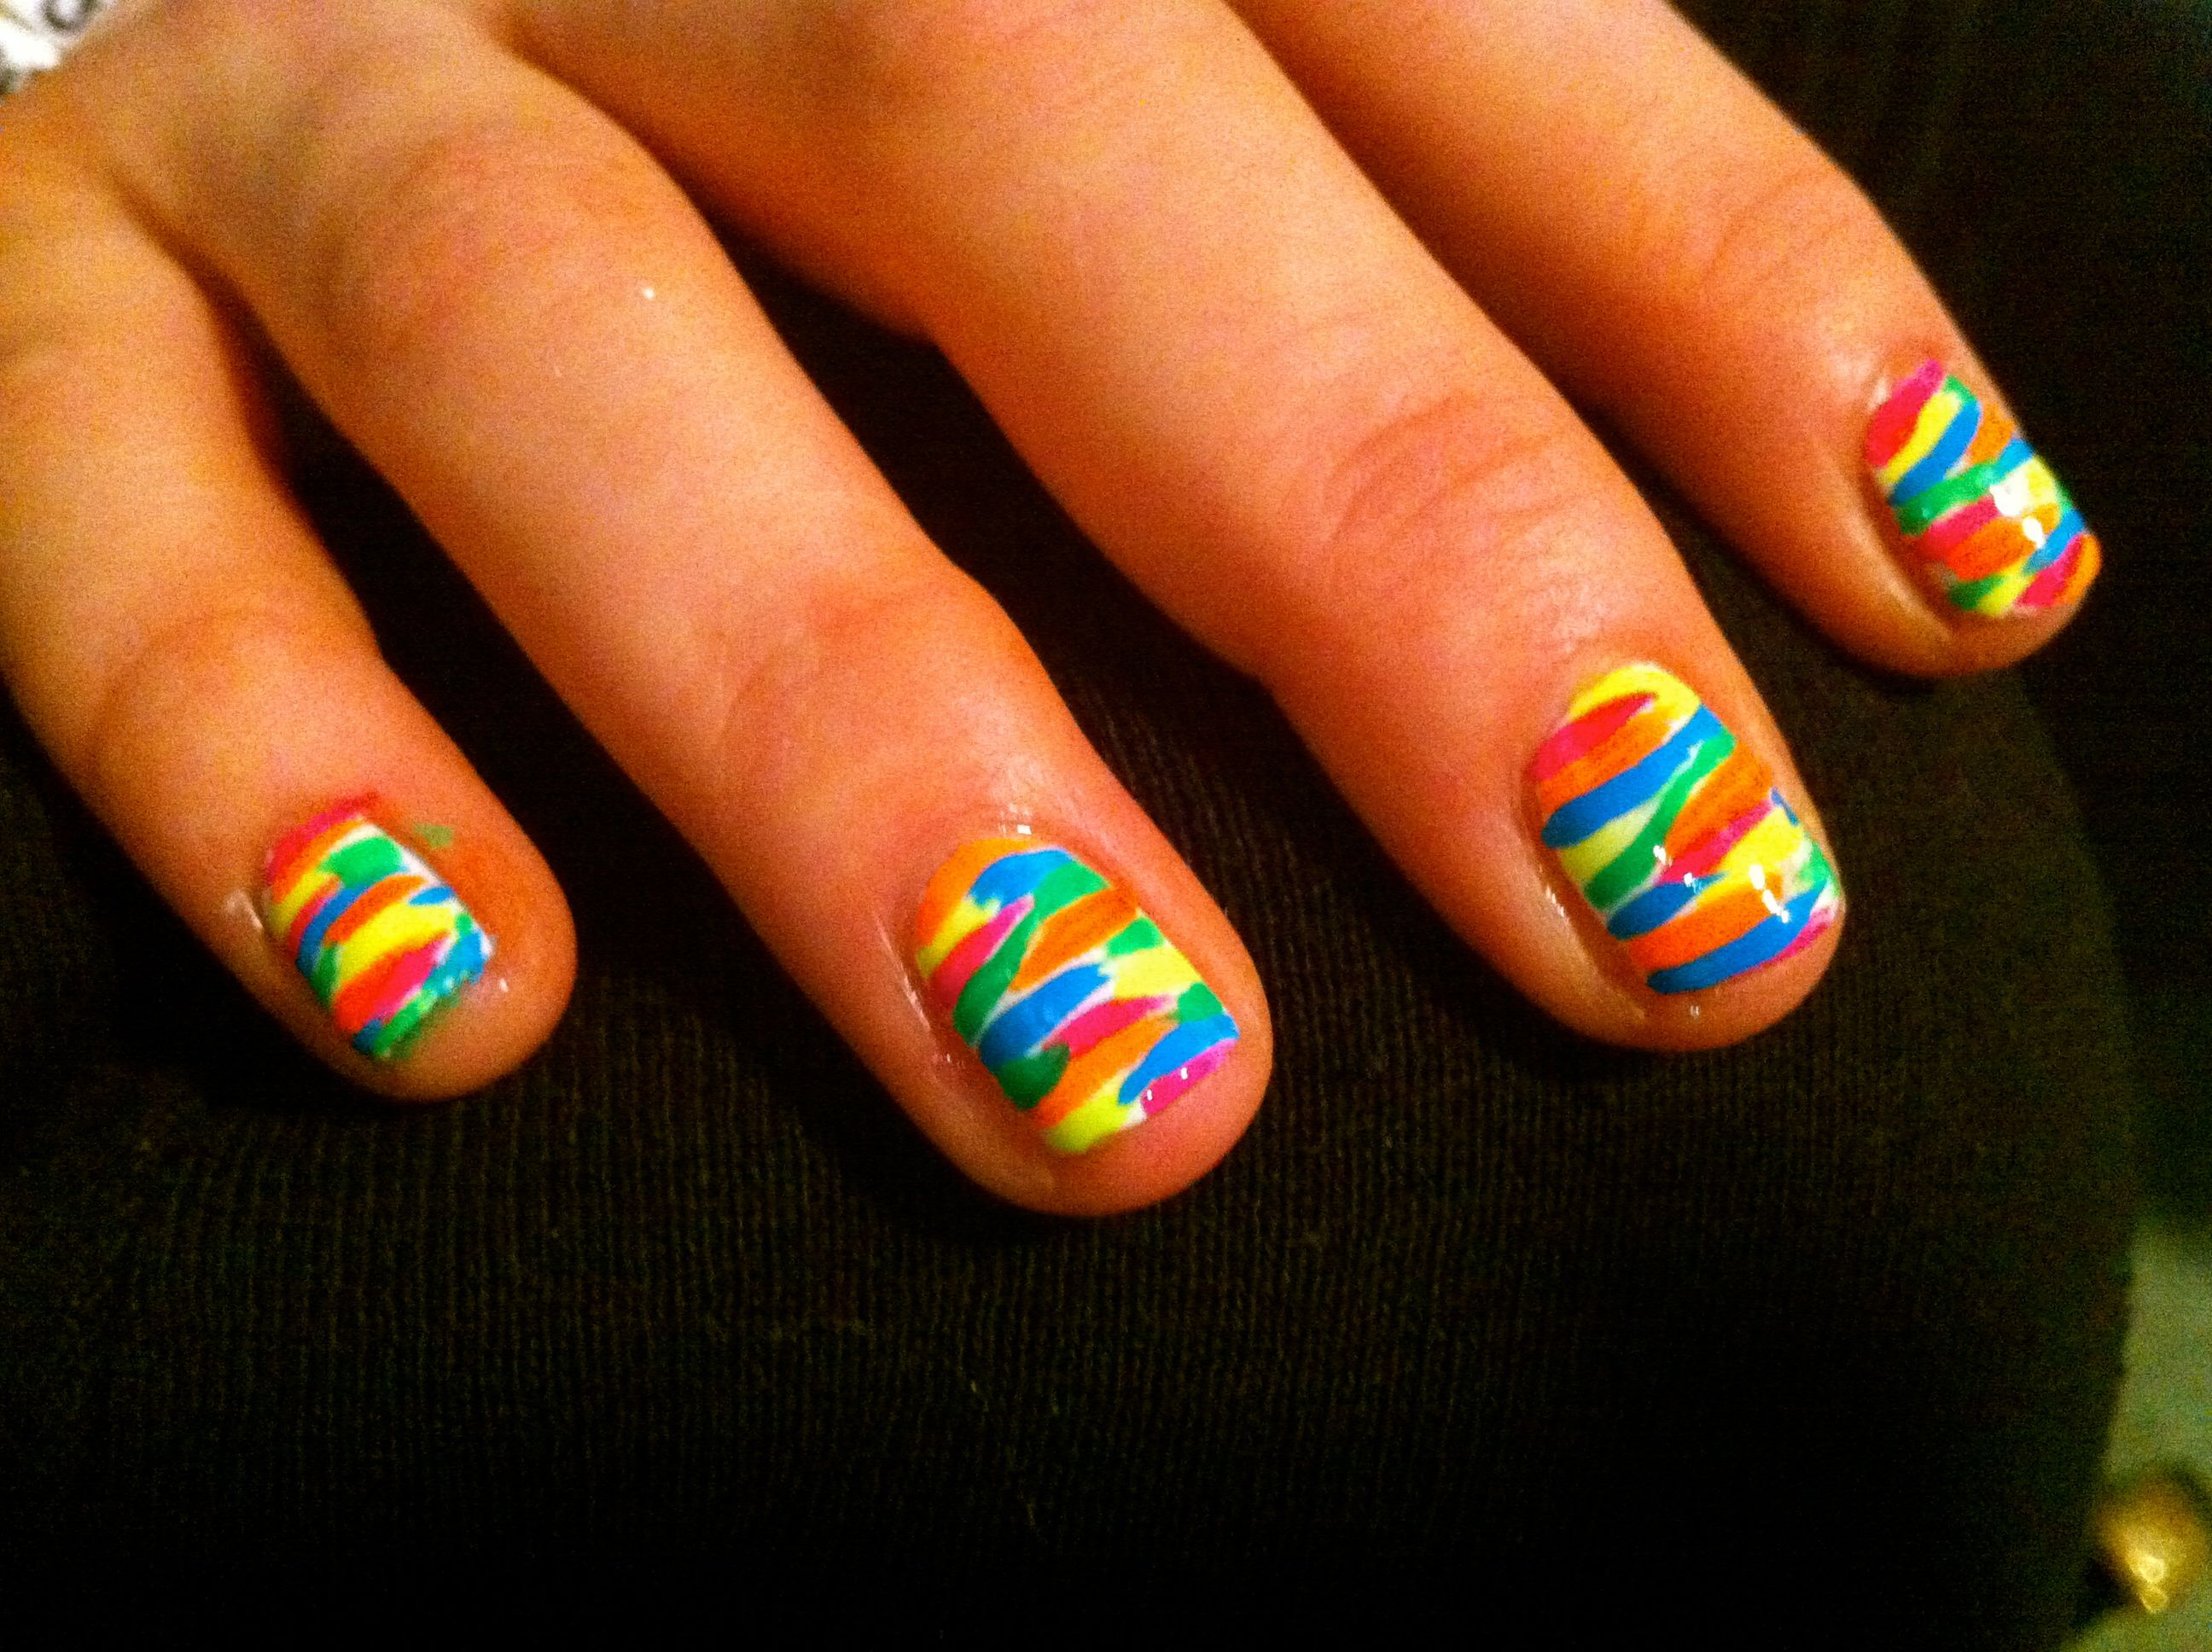 Pin by Annie Stimson on get nailed   Pinterest   Neon